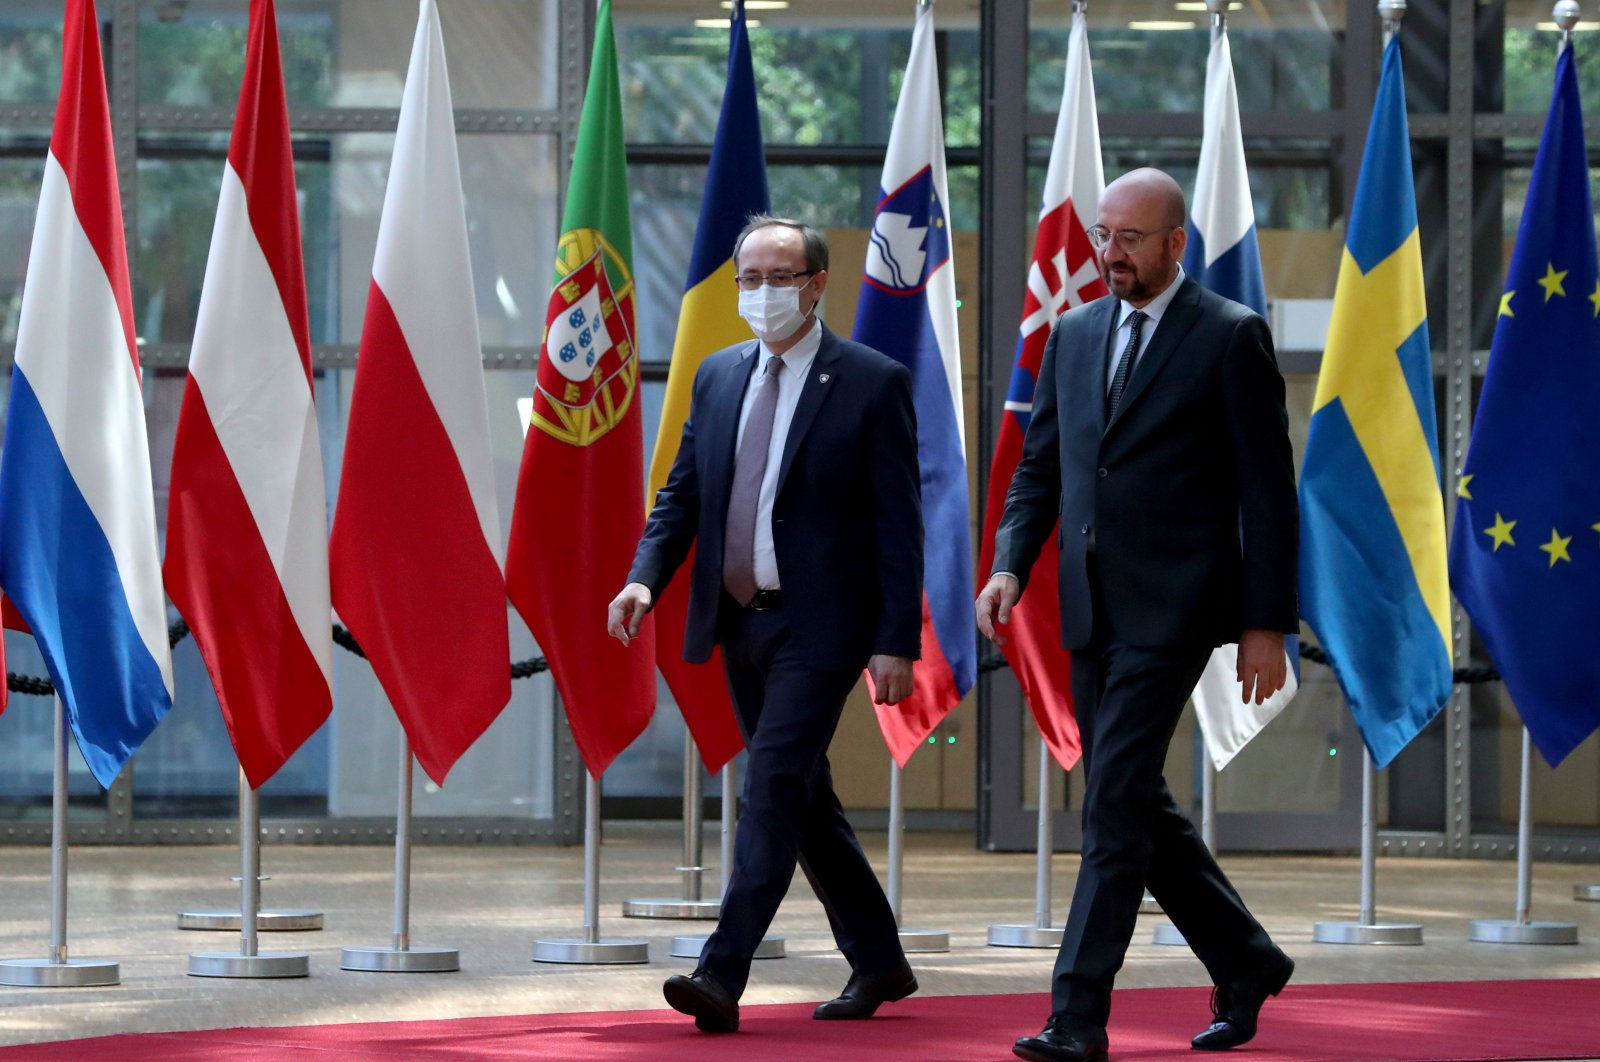 Kosovo's Prime Minister Avdullah Hoti (L) is welcomed by European Council President Charles Michel prior to a meeting at the Europa building, Brussels, June 25, 2020. (AP Photo)